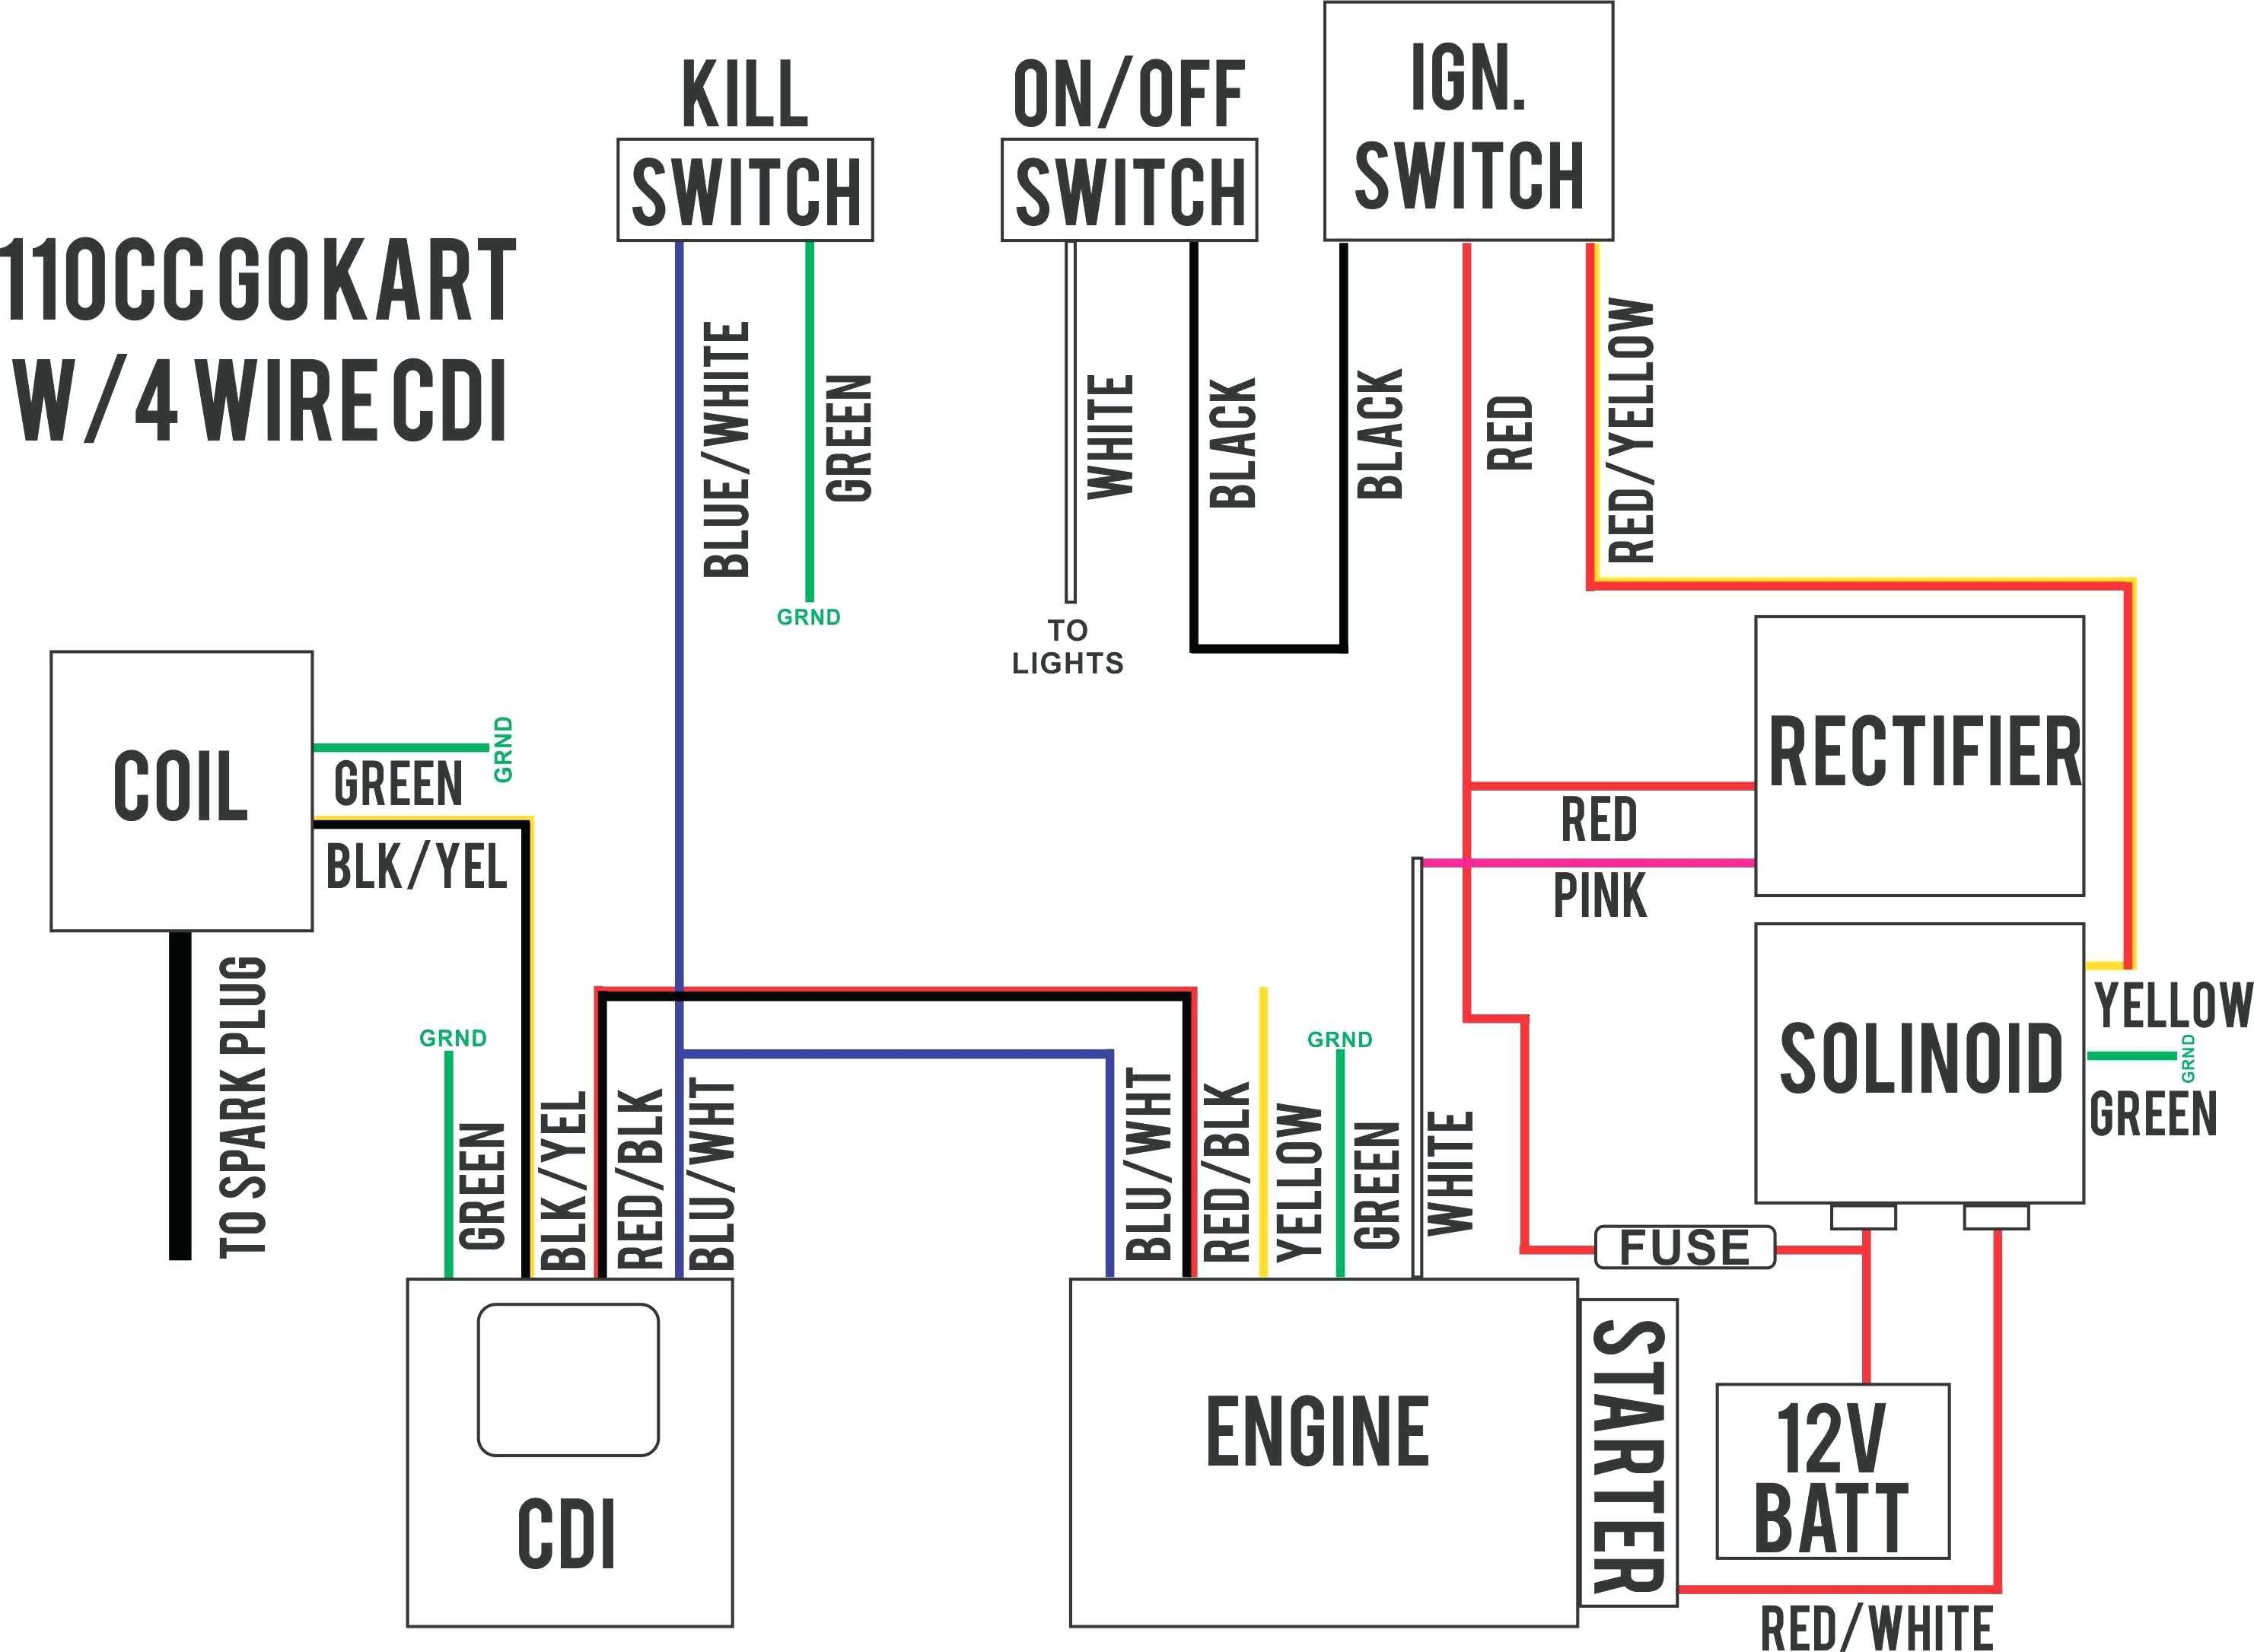 110 Light Switch Wiring Diagram - 4 Way Light Switch Wiring Fresh 4 Way Light Switch Wiring Diagram Best Excellent 4 Pin 9o